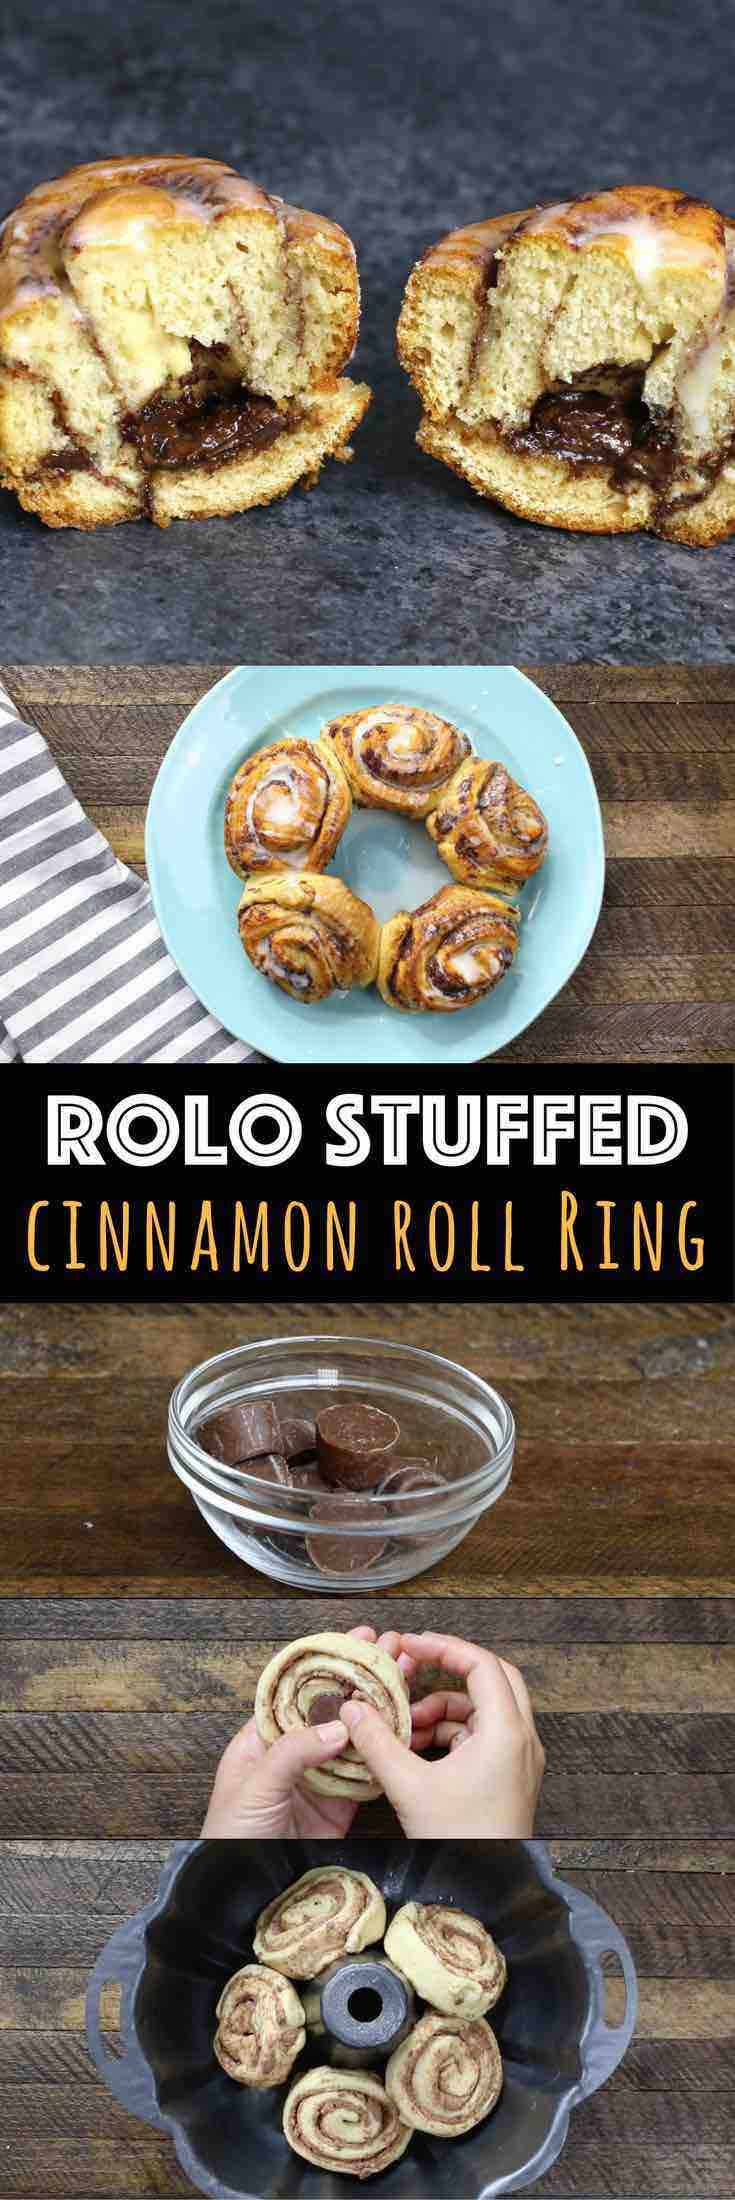 Rolo Stuffed Cinnamon Roll Ring – An easy and fun dessert recipe that's so easy to make. All you need is only Cinnamon Roll dough and Rolo candies. Stuff Rolo into the cinnamon rolls, arrange them in a ring shape in the Bundt pan, and bake! Then drizzle with icing. So good! Quick and easy recipe, 3 Ingredient video recipe. | Tipbuzz.com